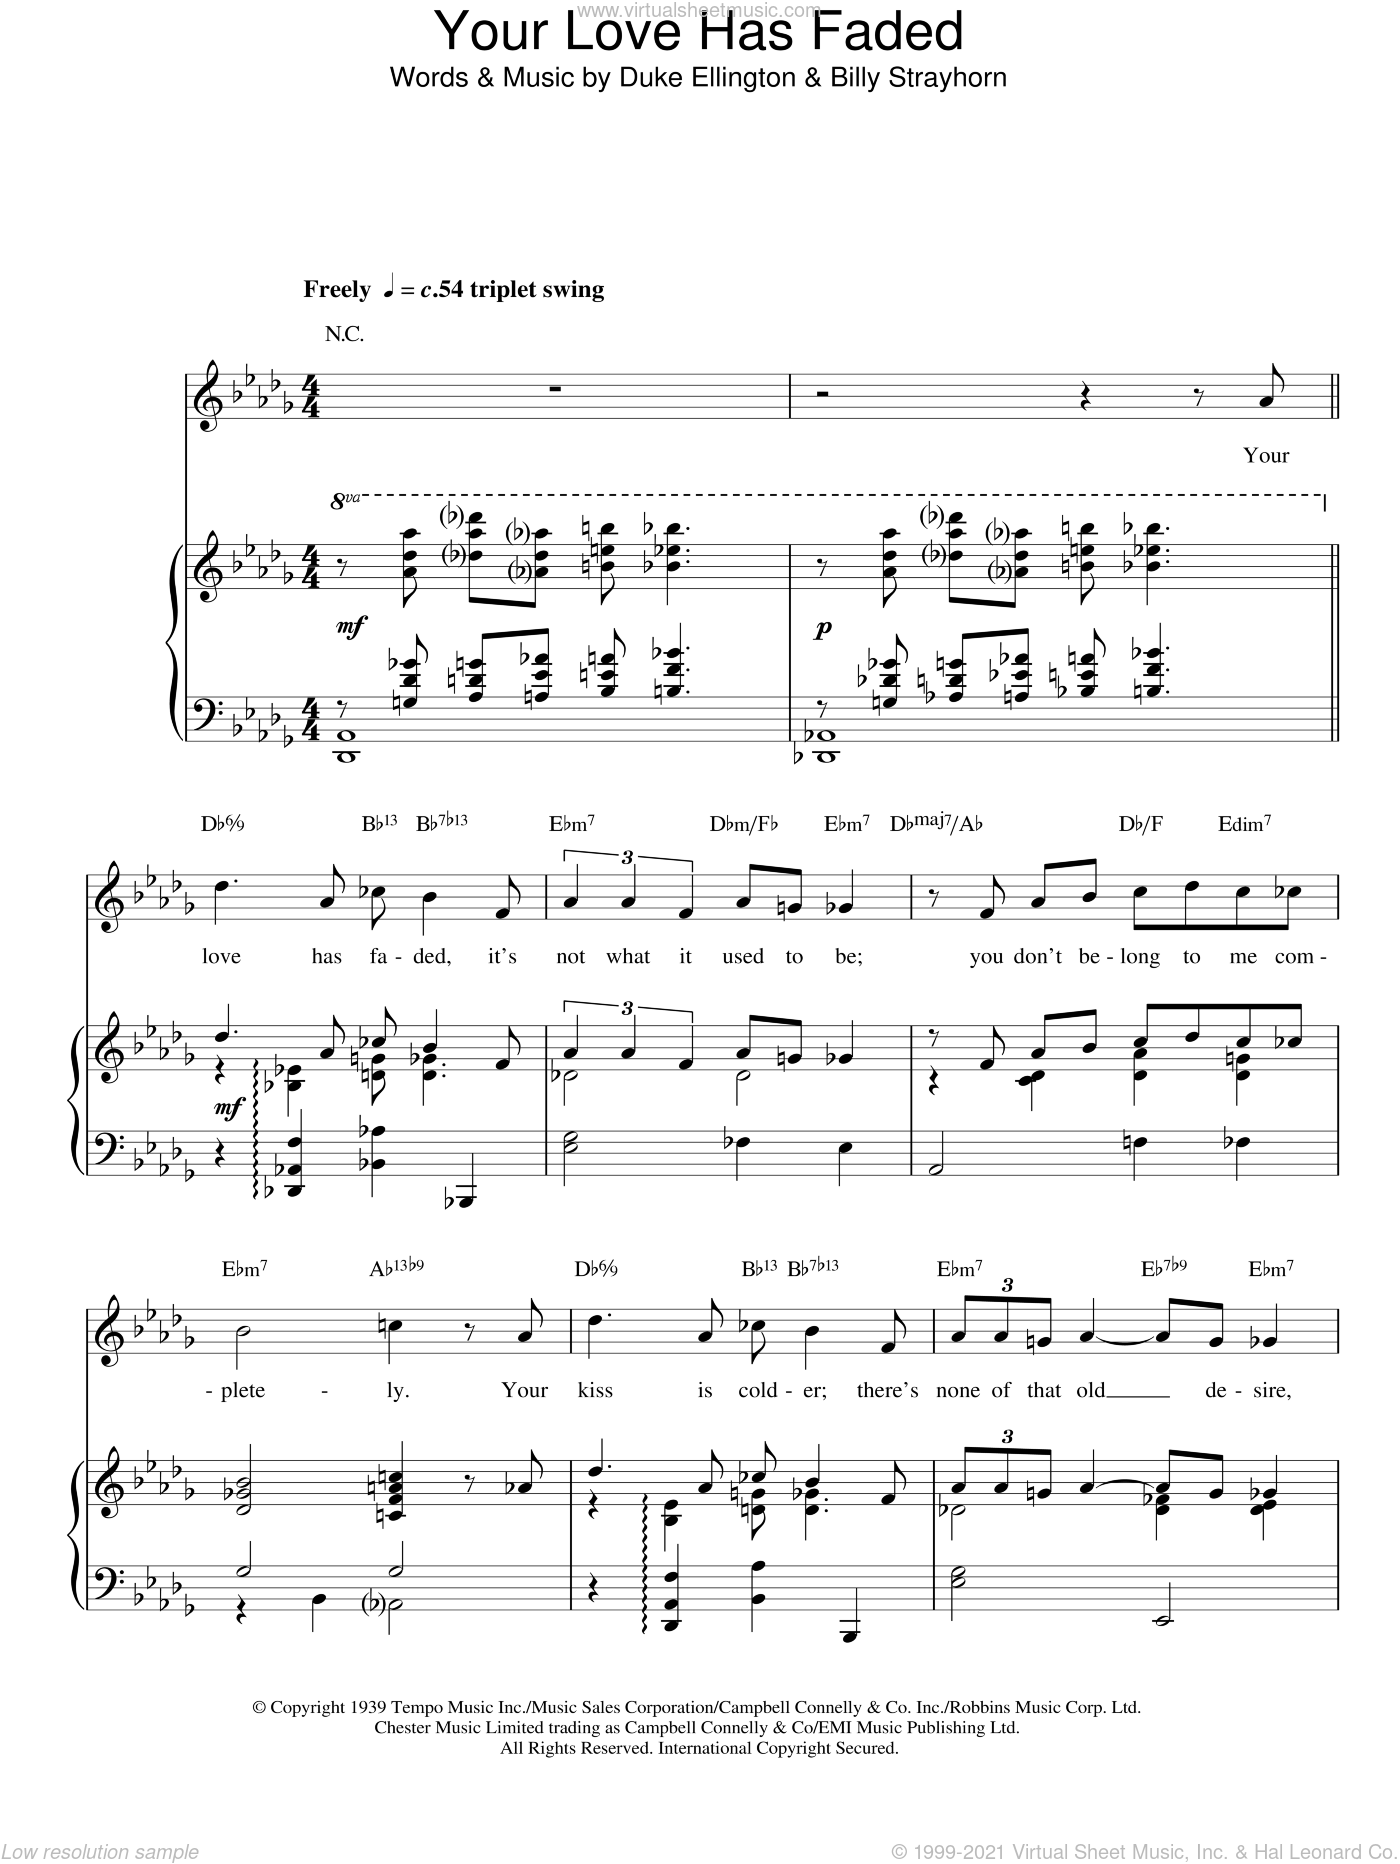 Your Love Has Faded sheet music for voice, piano or guitar by Billy Strayhorn